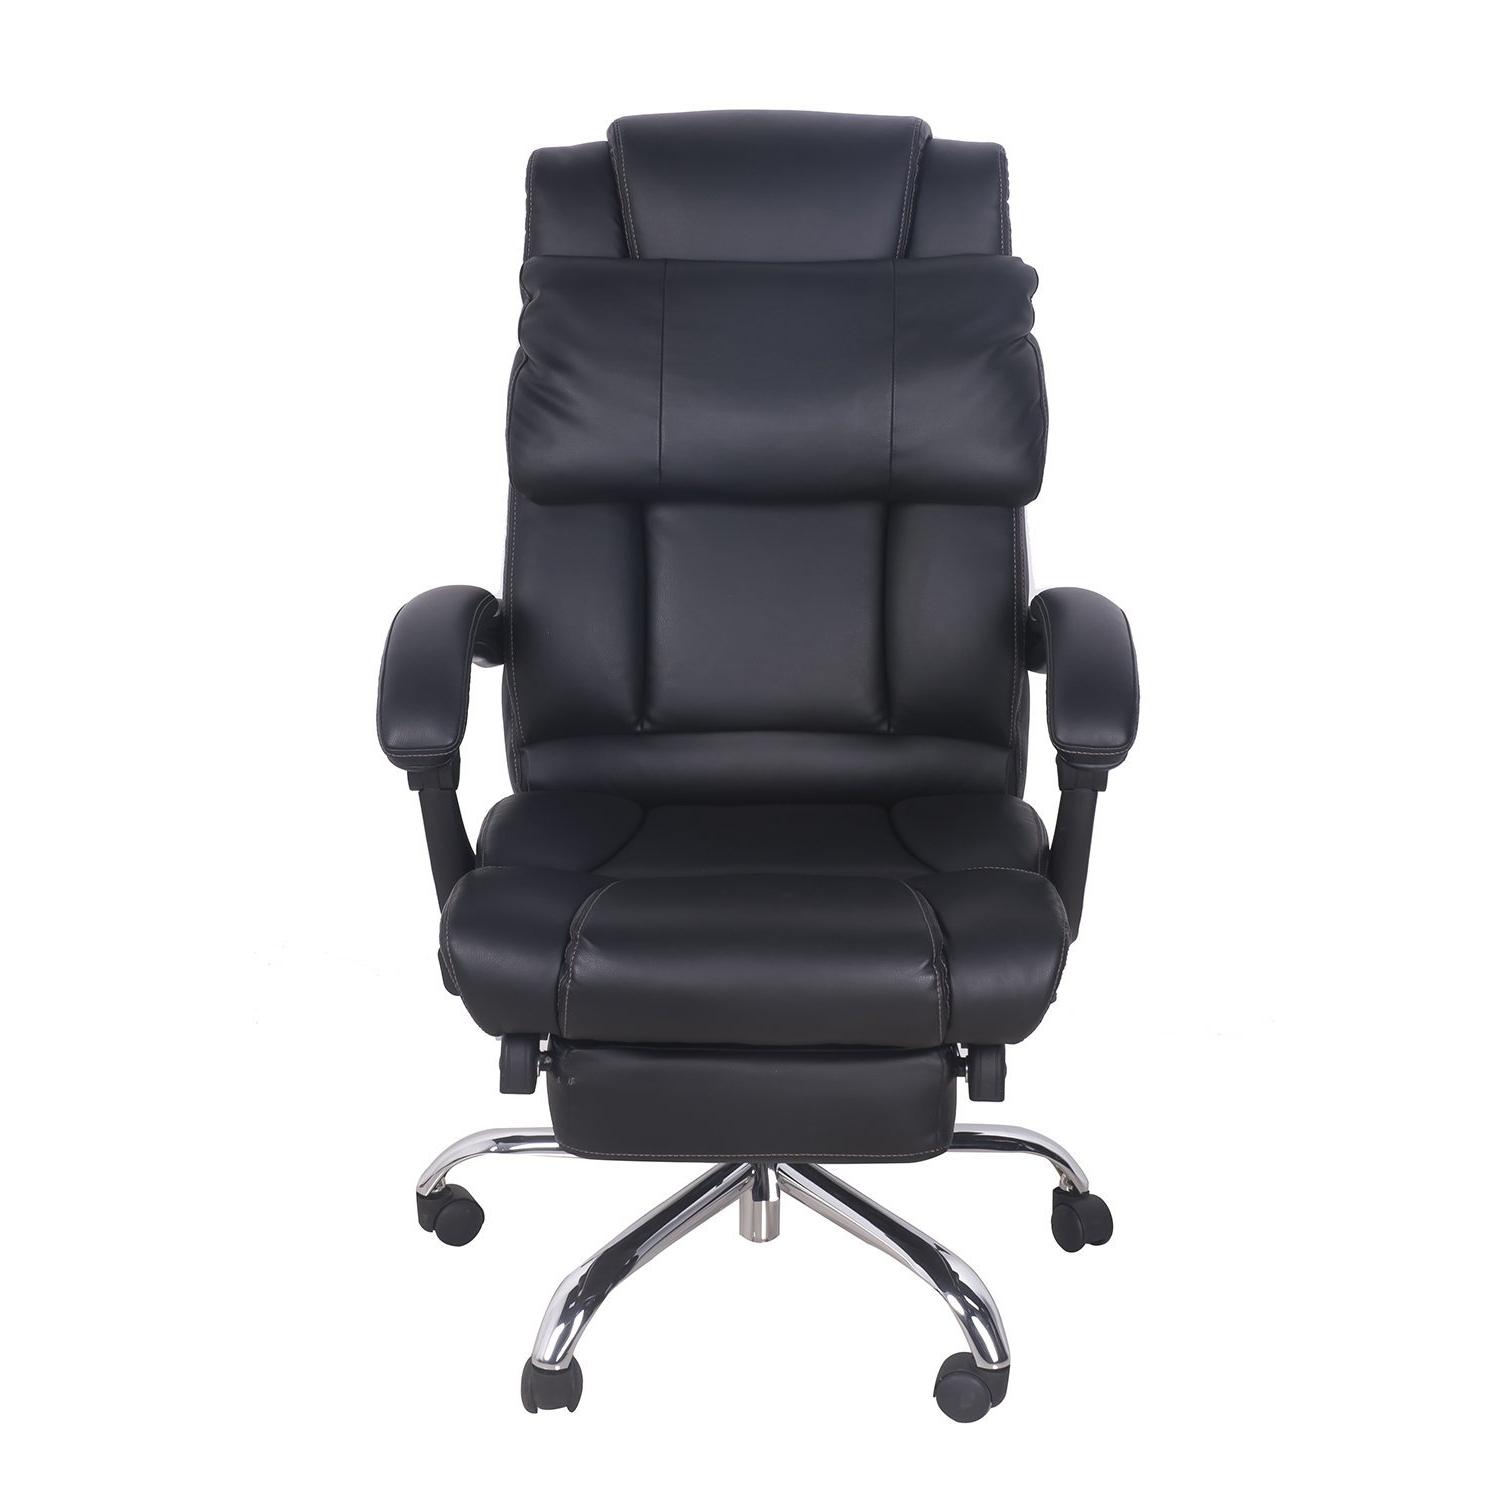 Updated Guide For 2018 Within Leather Executive Office Massage Chairs (View 19 of 20)